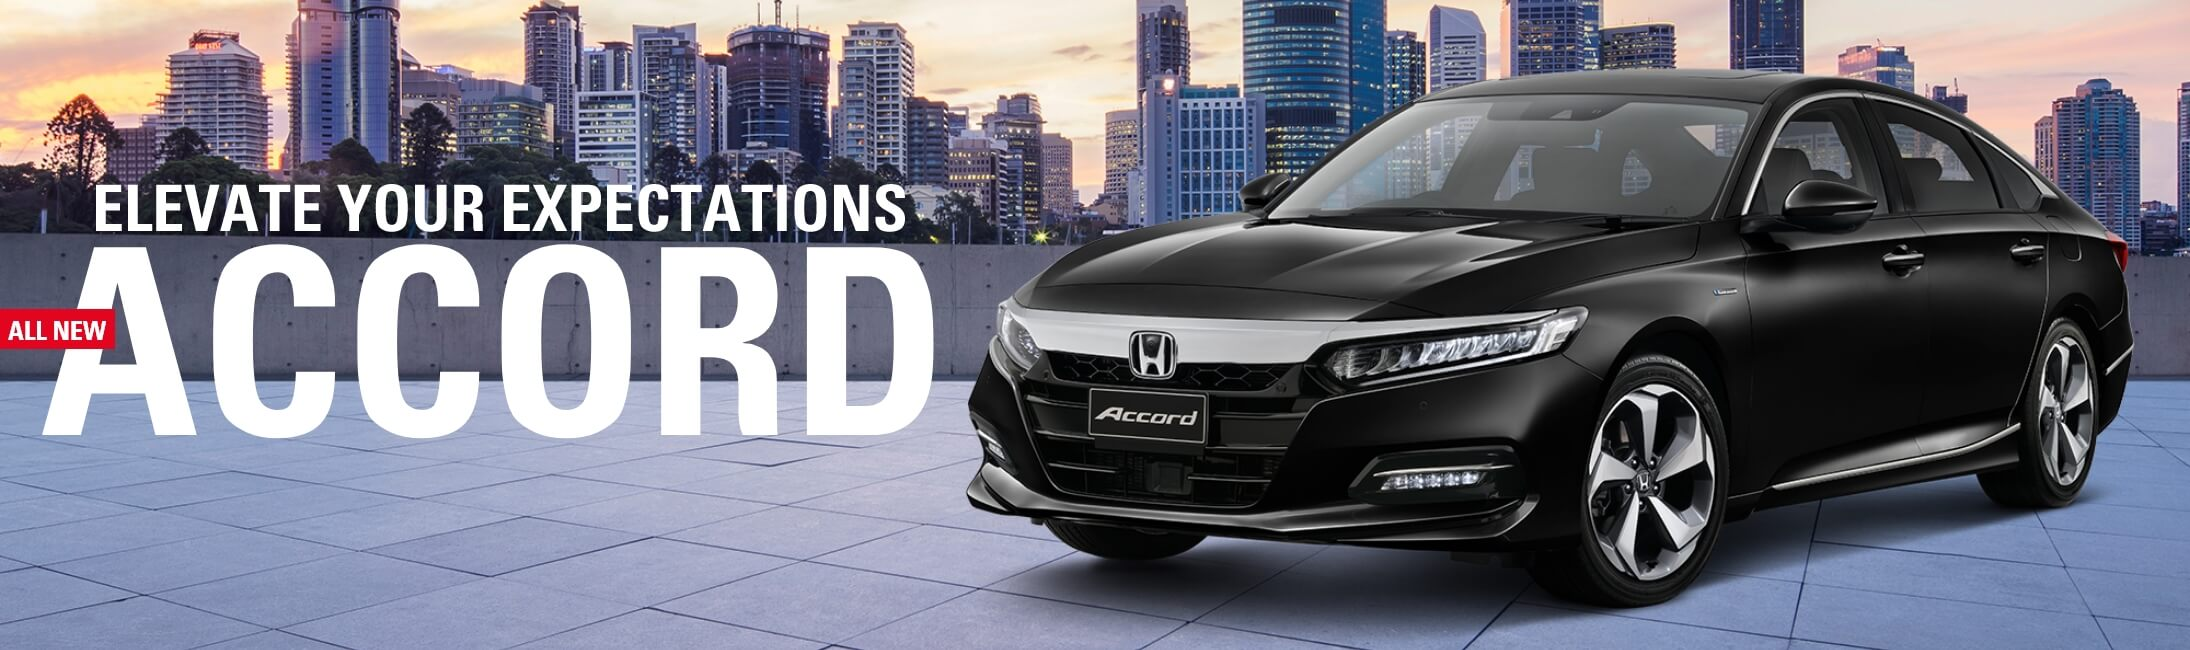 Honda - All New Accord